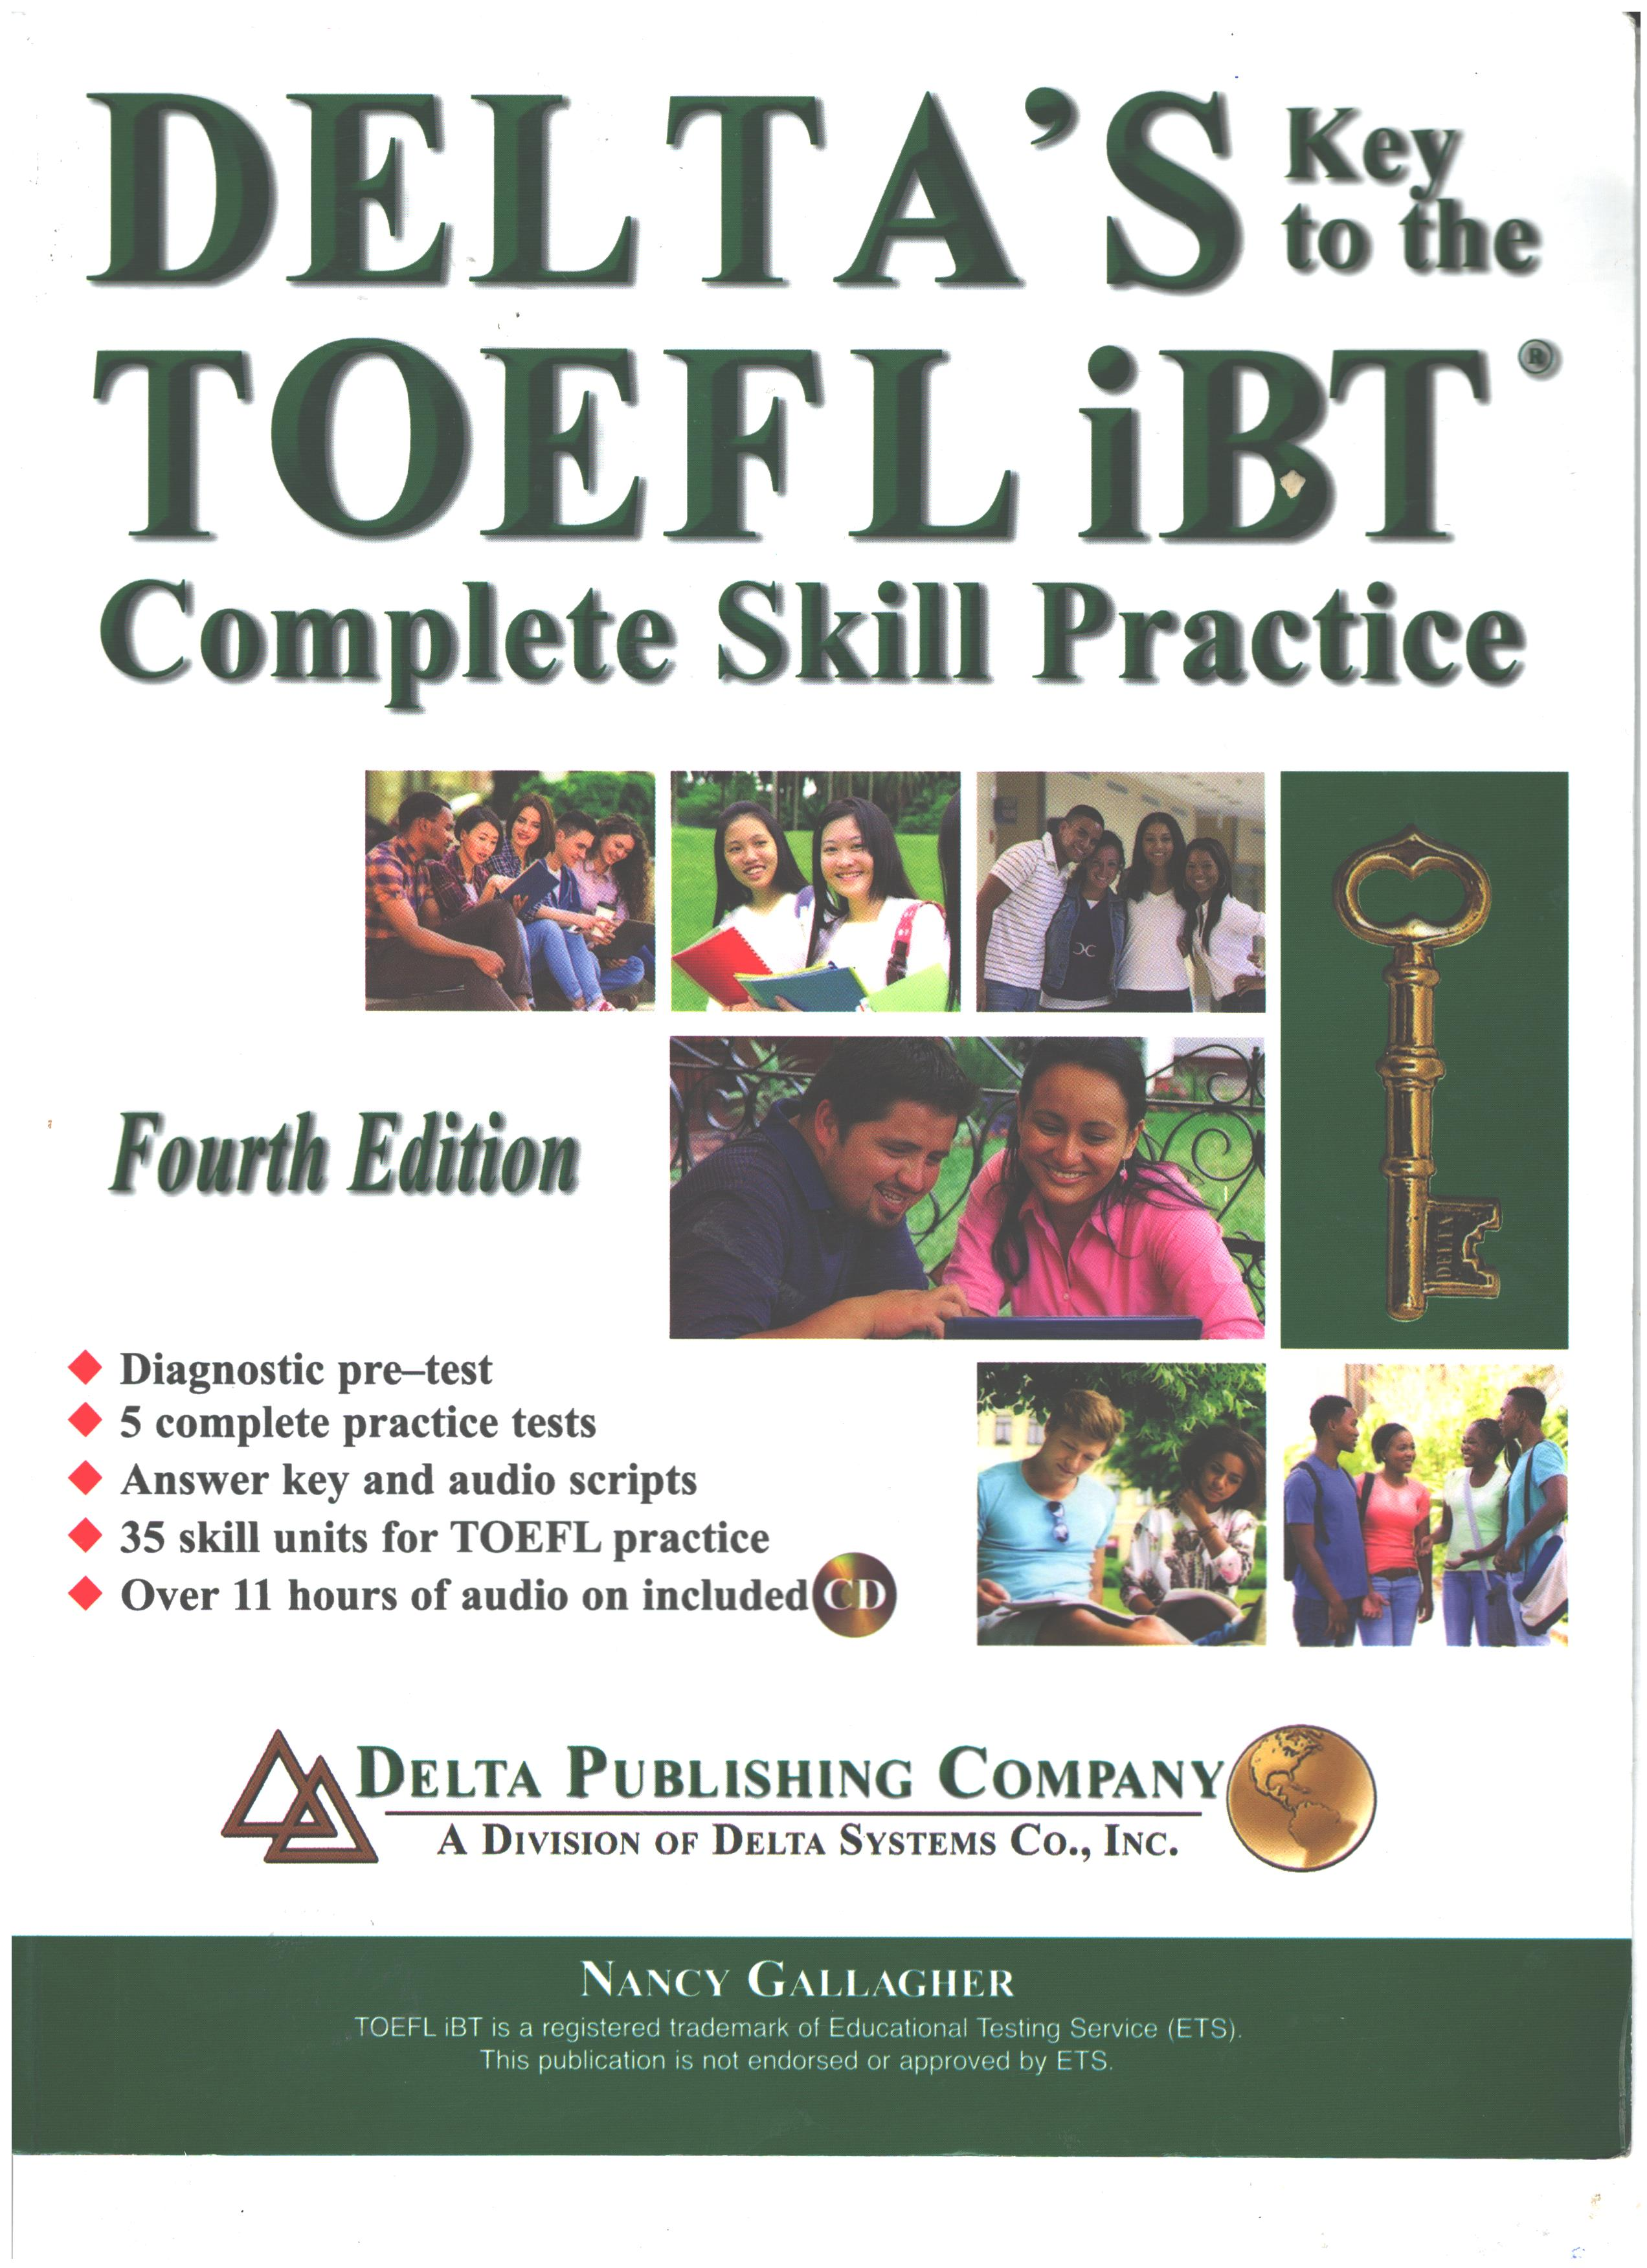 آخرین نسخه کتاب دلتا Delta's Key to the TOEFL iBT Complete Skill Practice 4th Edition